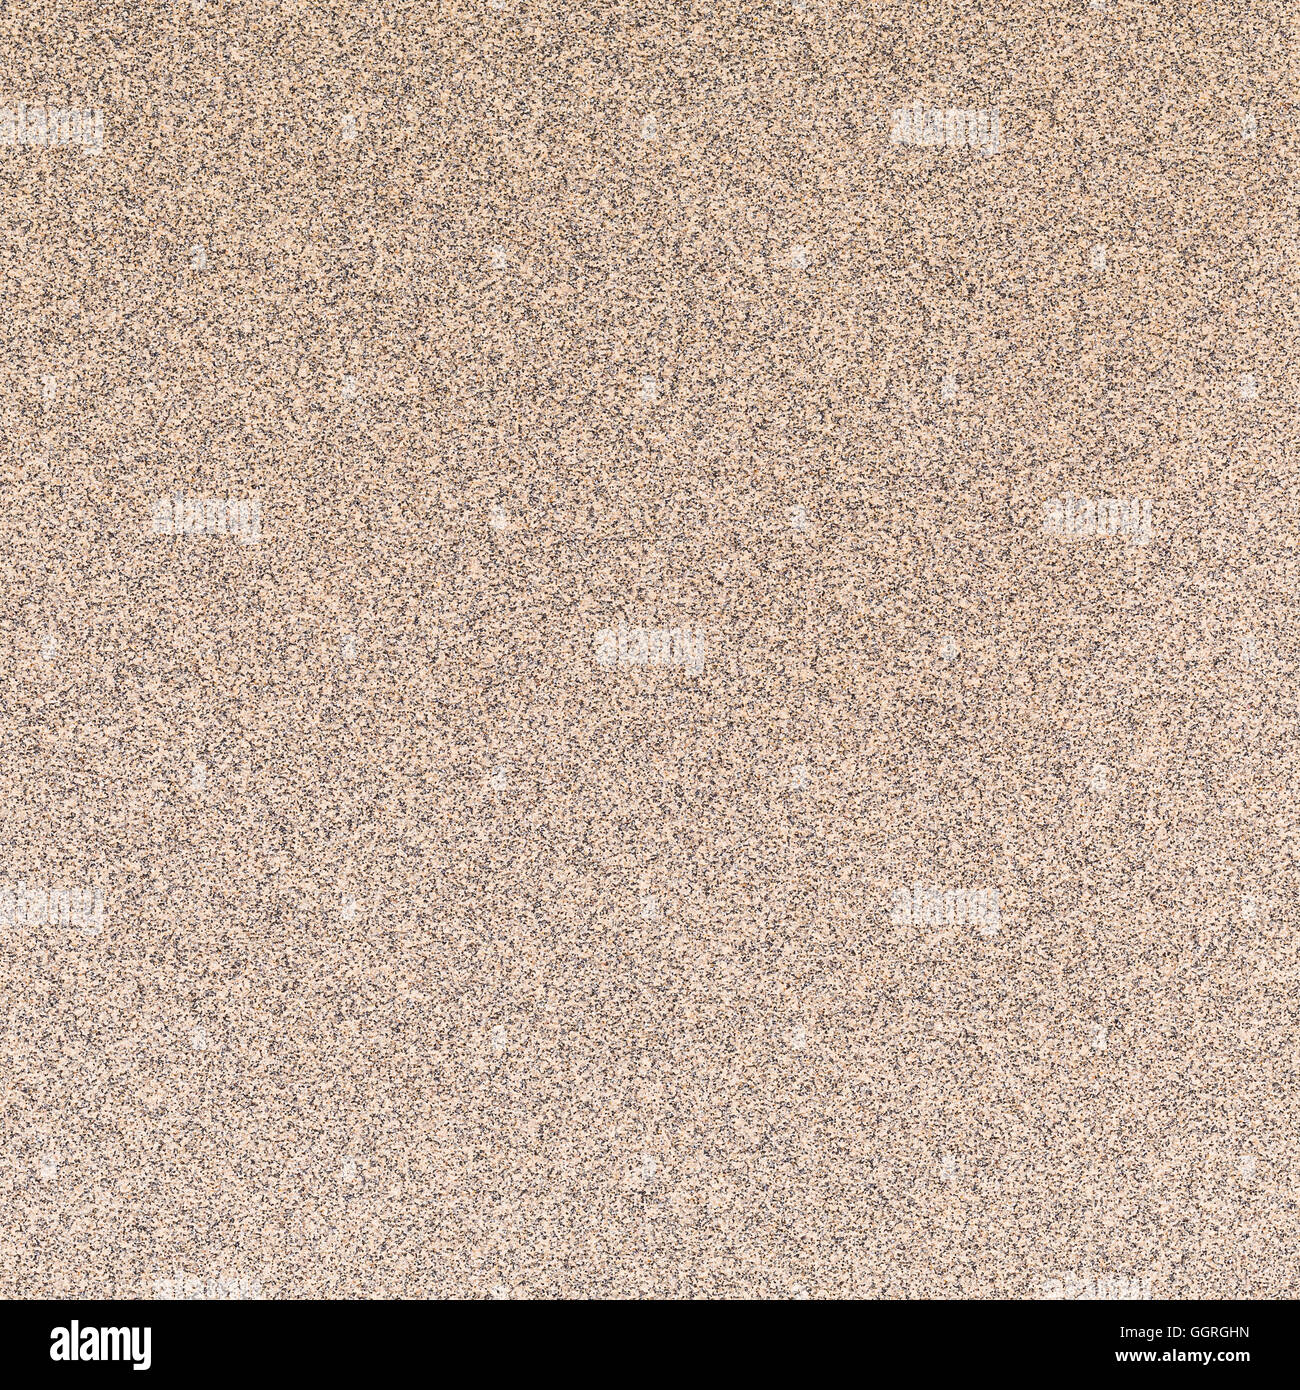 Sheets of sandpaper texture background, sand - Stock Image